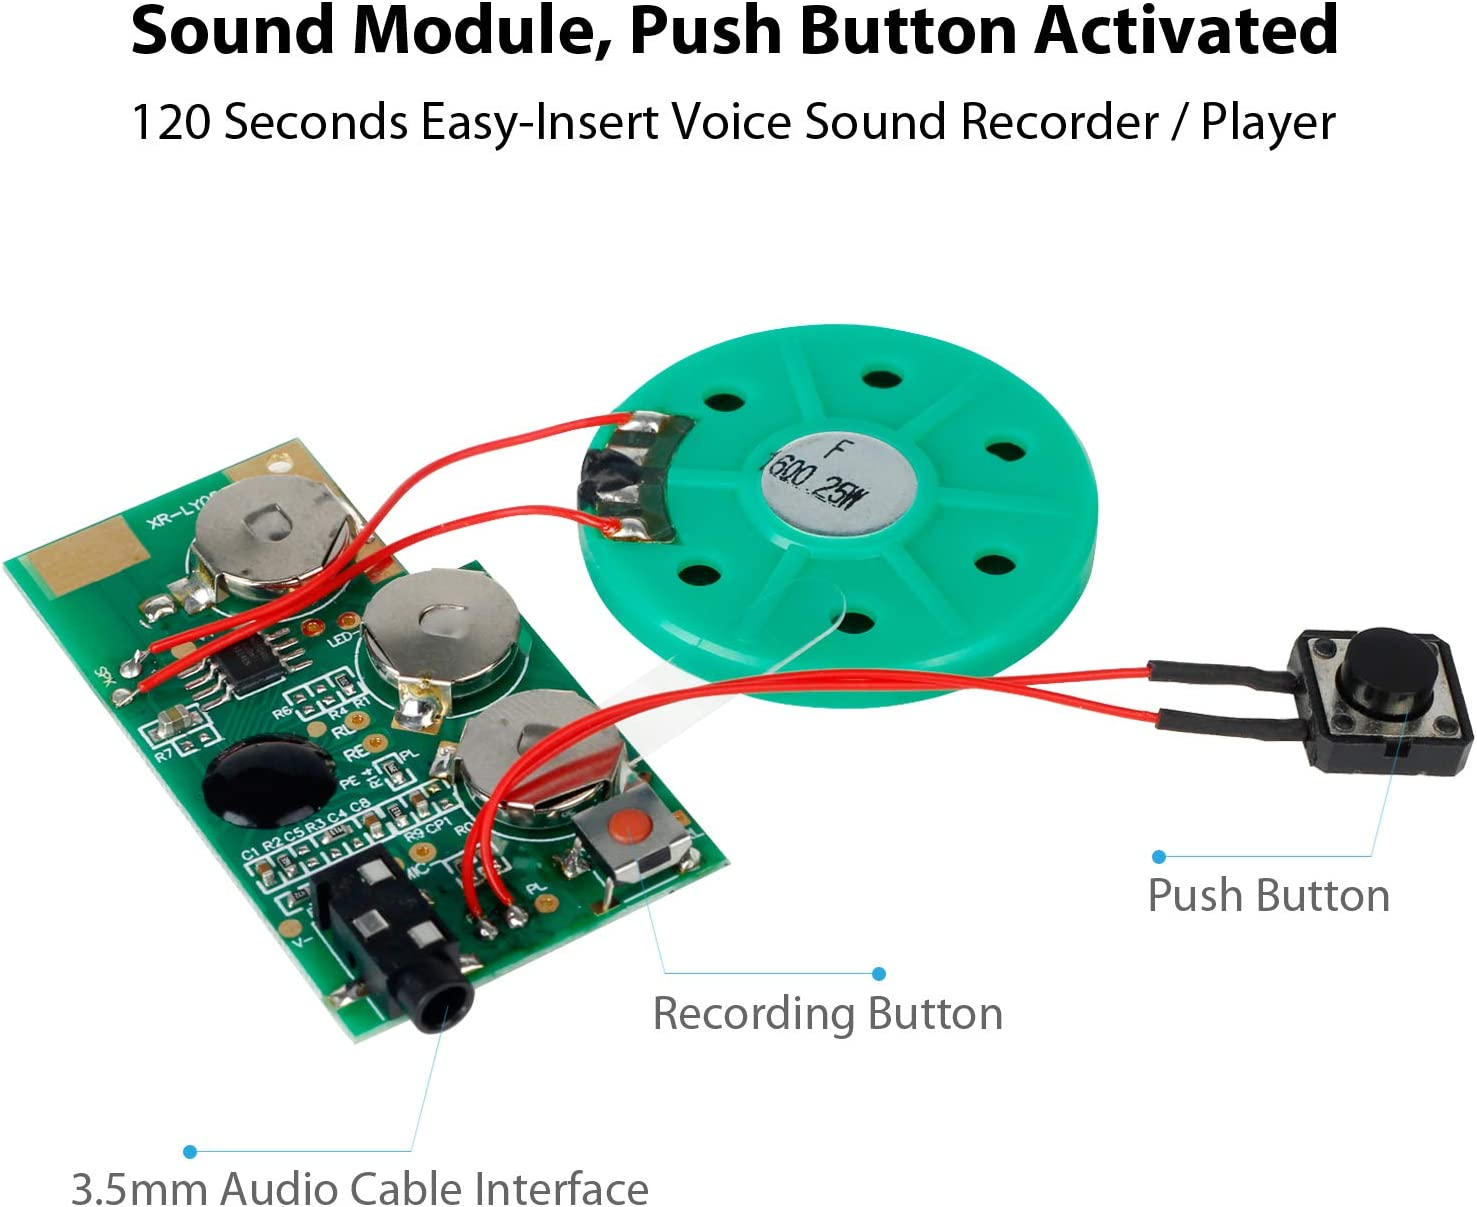 EZSound Module Push Button Activated 120 Seconds Recording Easy to Record